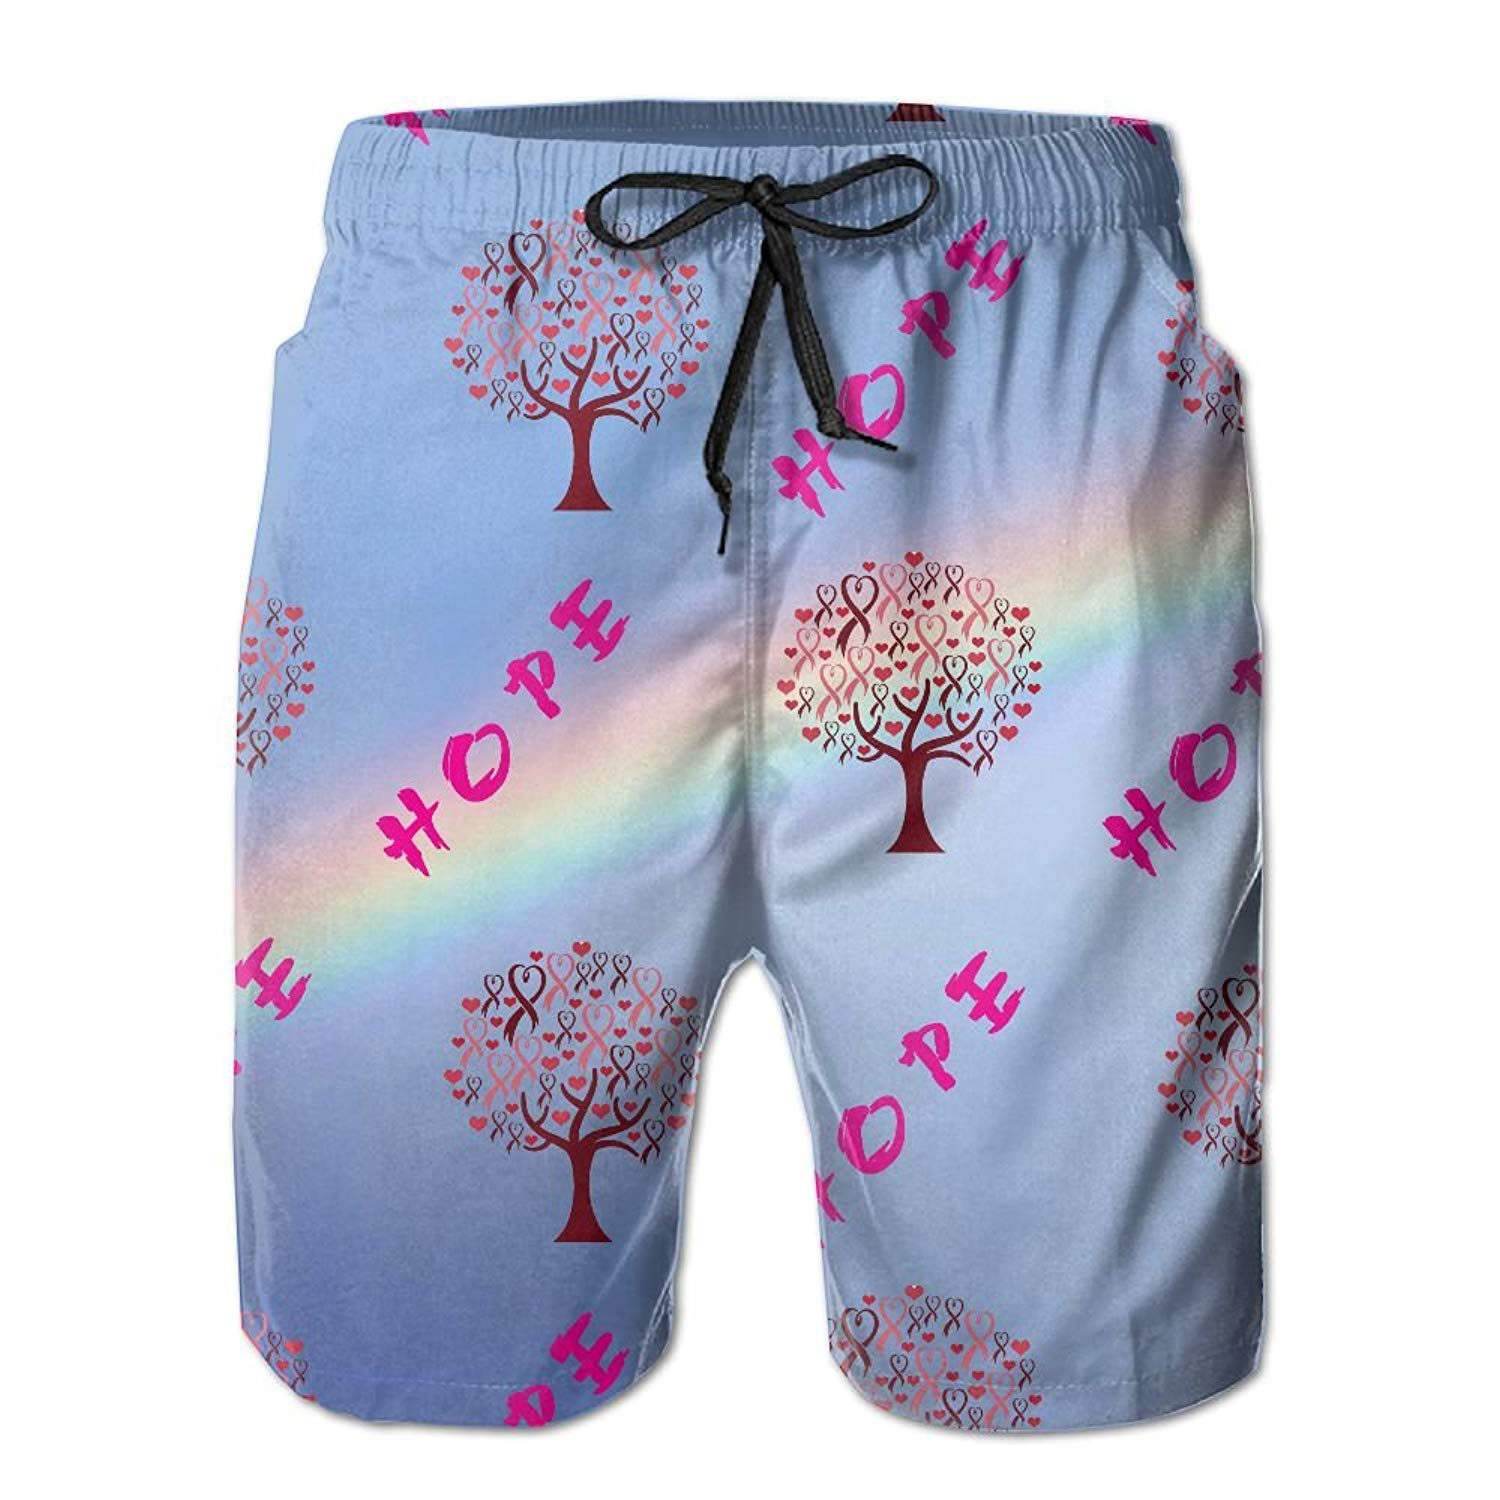 Mens Pink Ribbon Breast Cancer Awareness Casual Quick Dry Swim Trunks Elastic Drawstring Cargo Shorts with Pocket